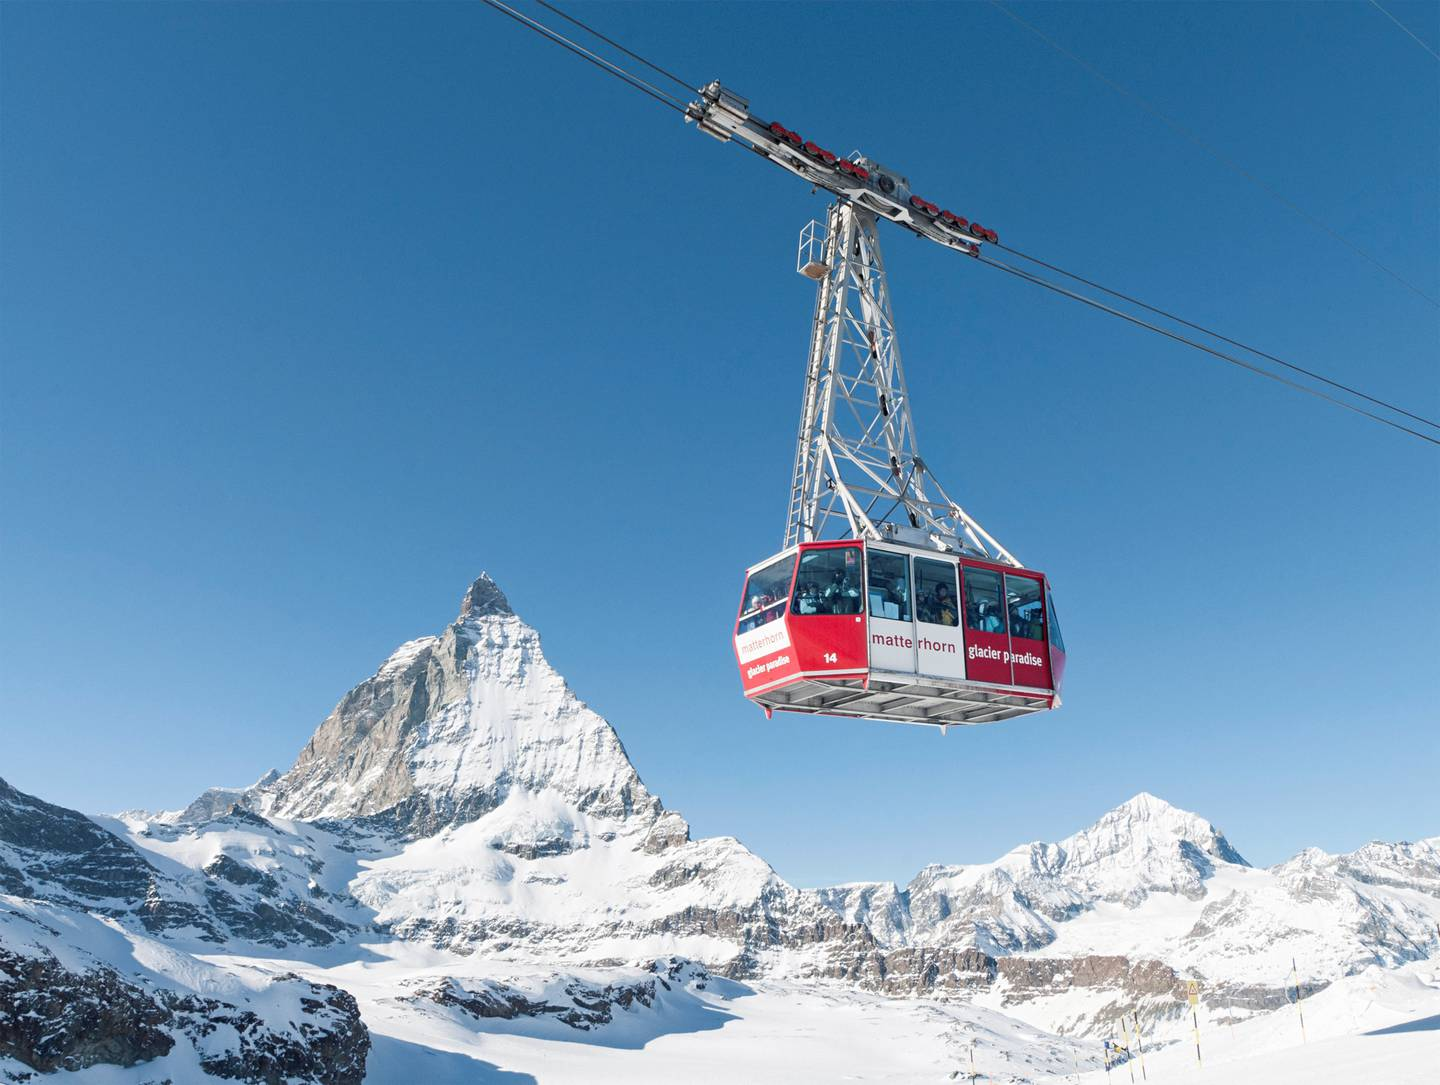 Zermatt, Switzerland - January 17, 2011: Skiers and snowboarders using the Matterhorn Glacier Paradise cable car, with the peak of the Matterhorn in the background.